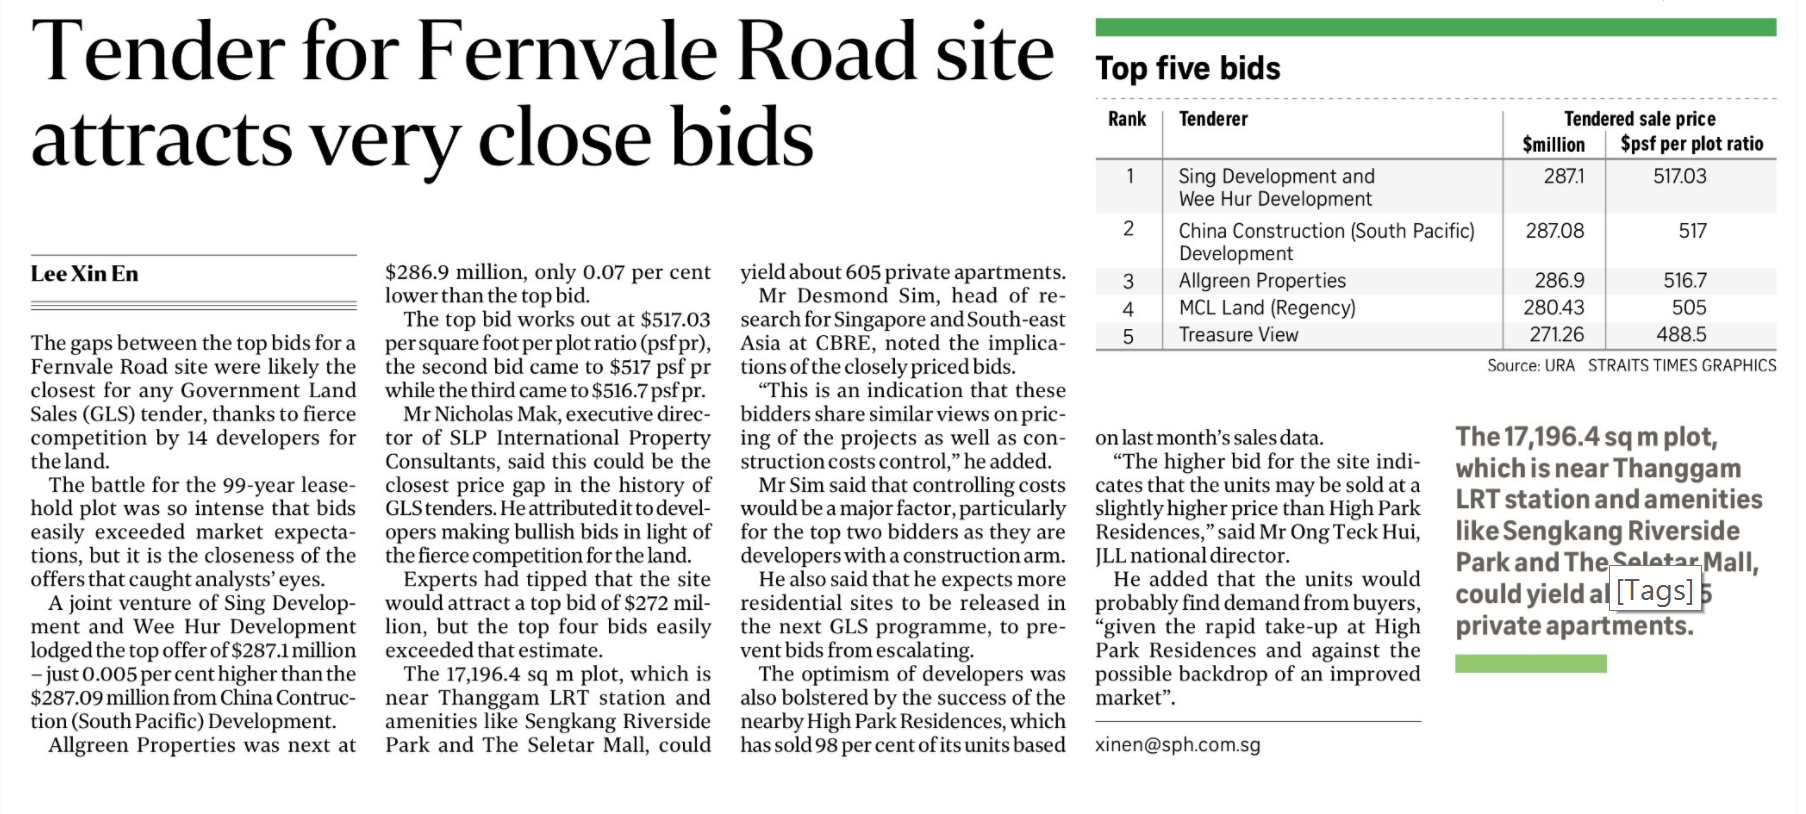 Fernvale Tender Land Prices